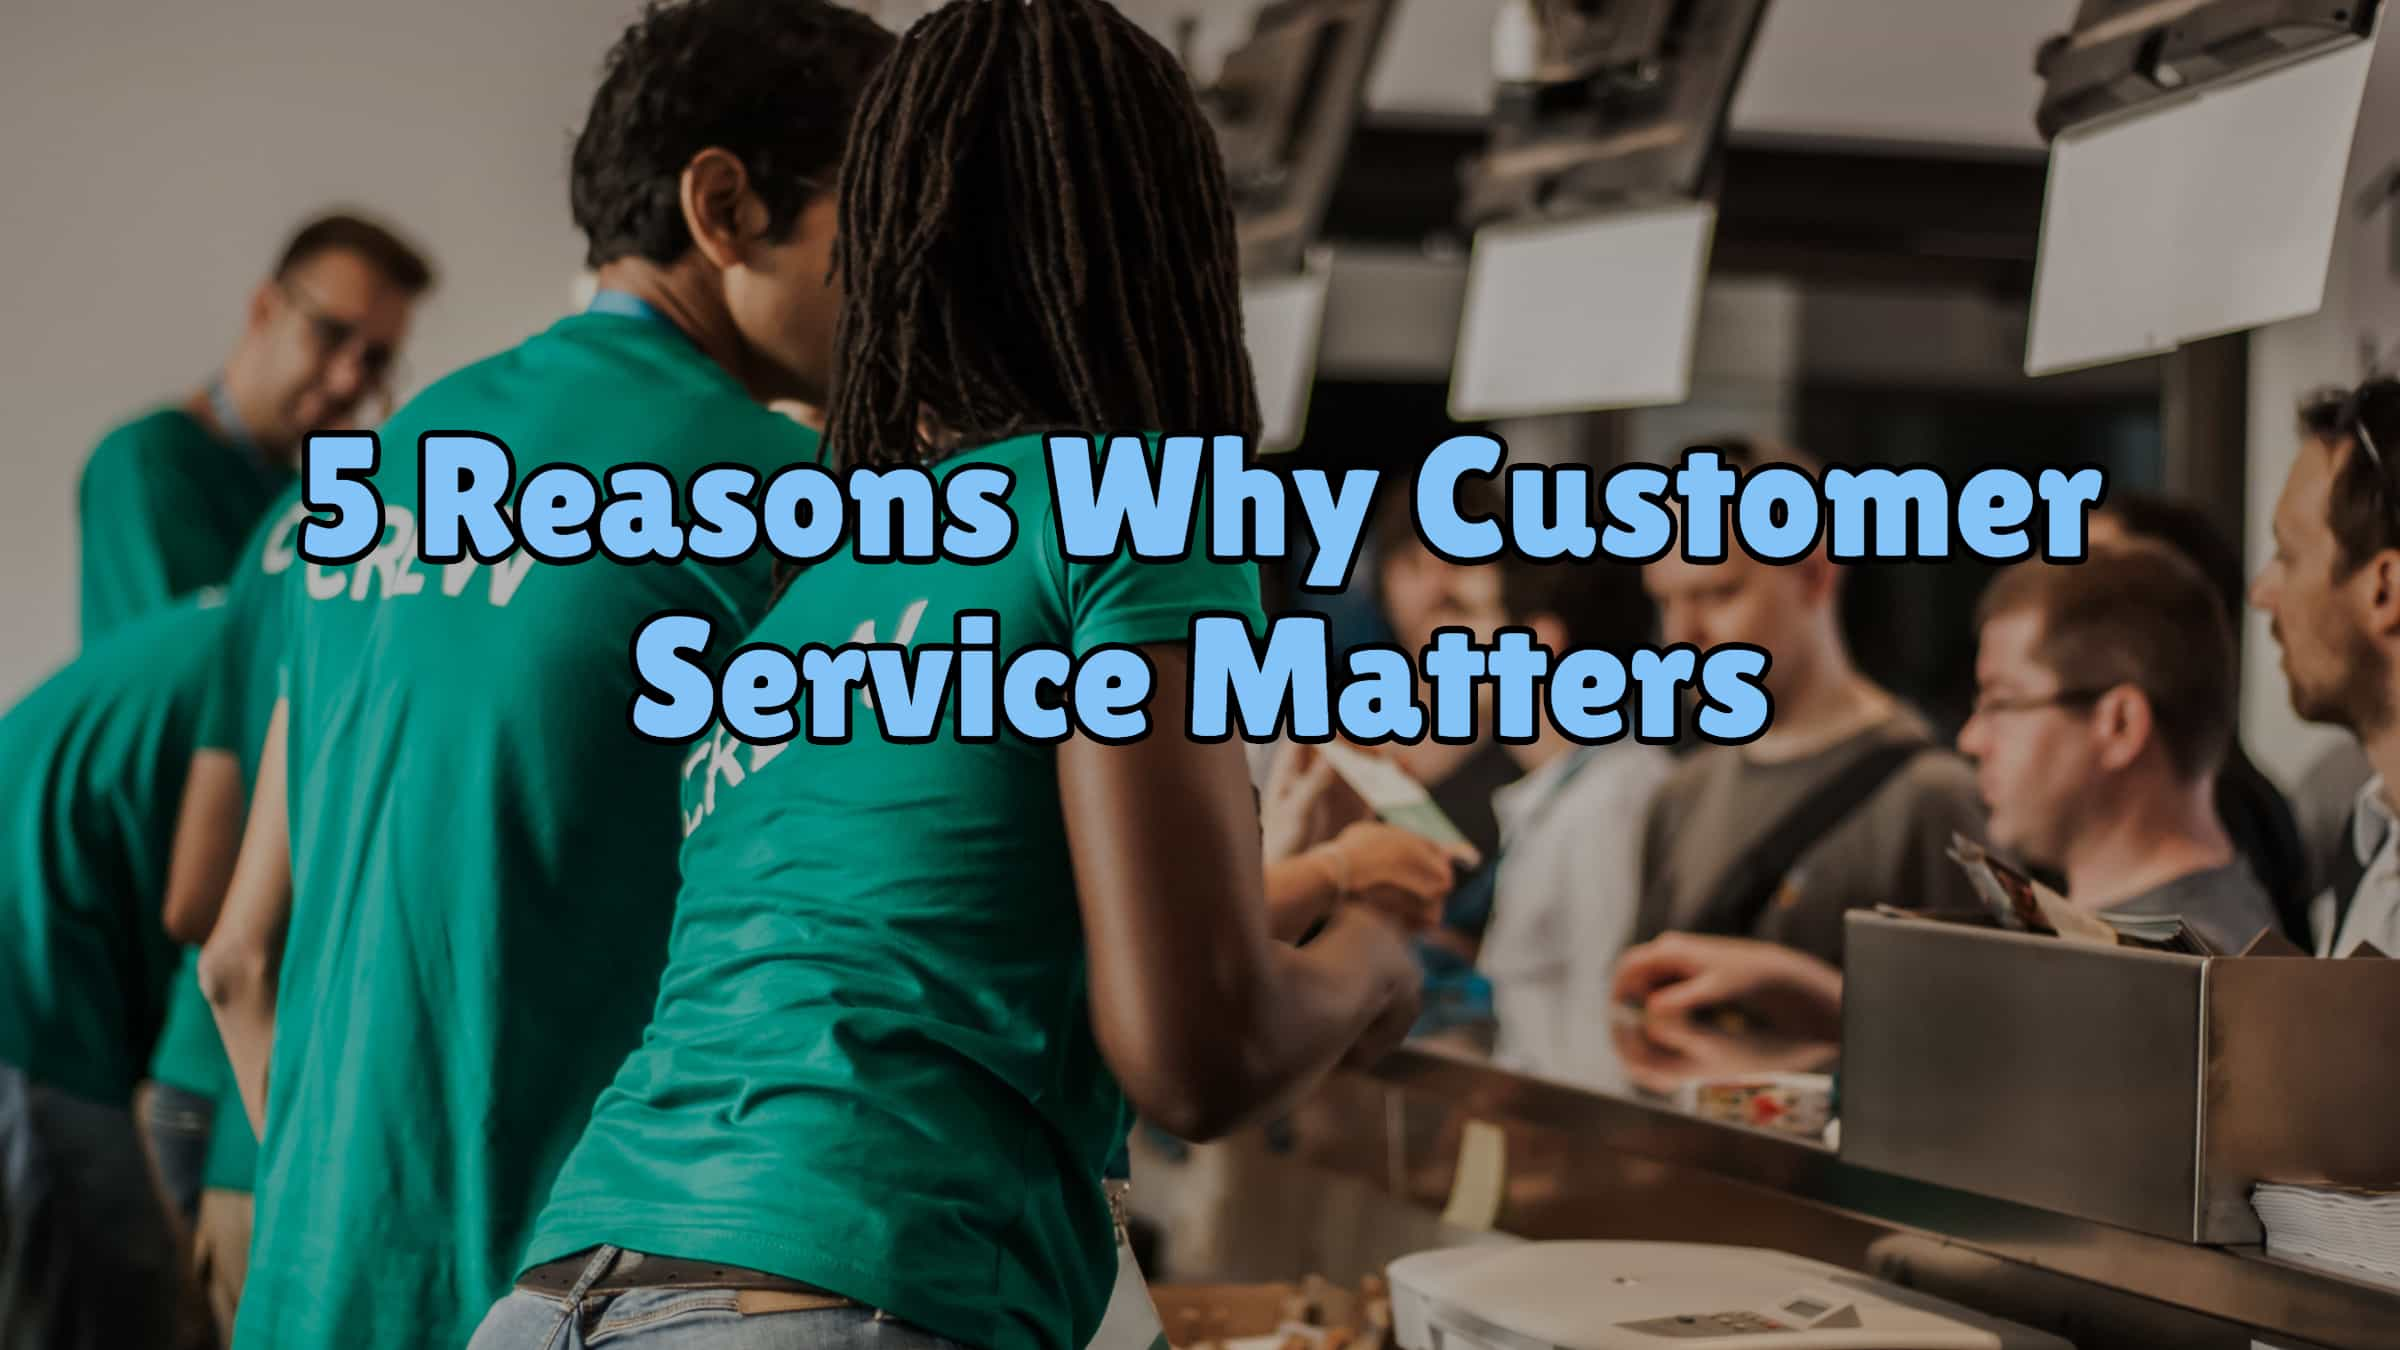 5 Reasons Why Customer Service Matters